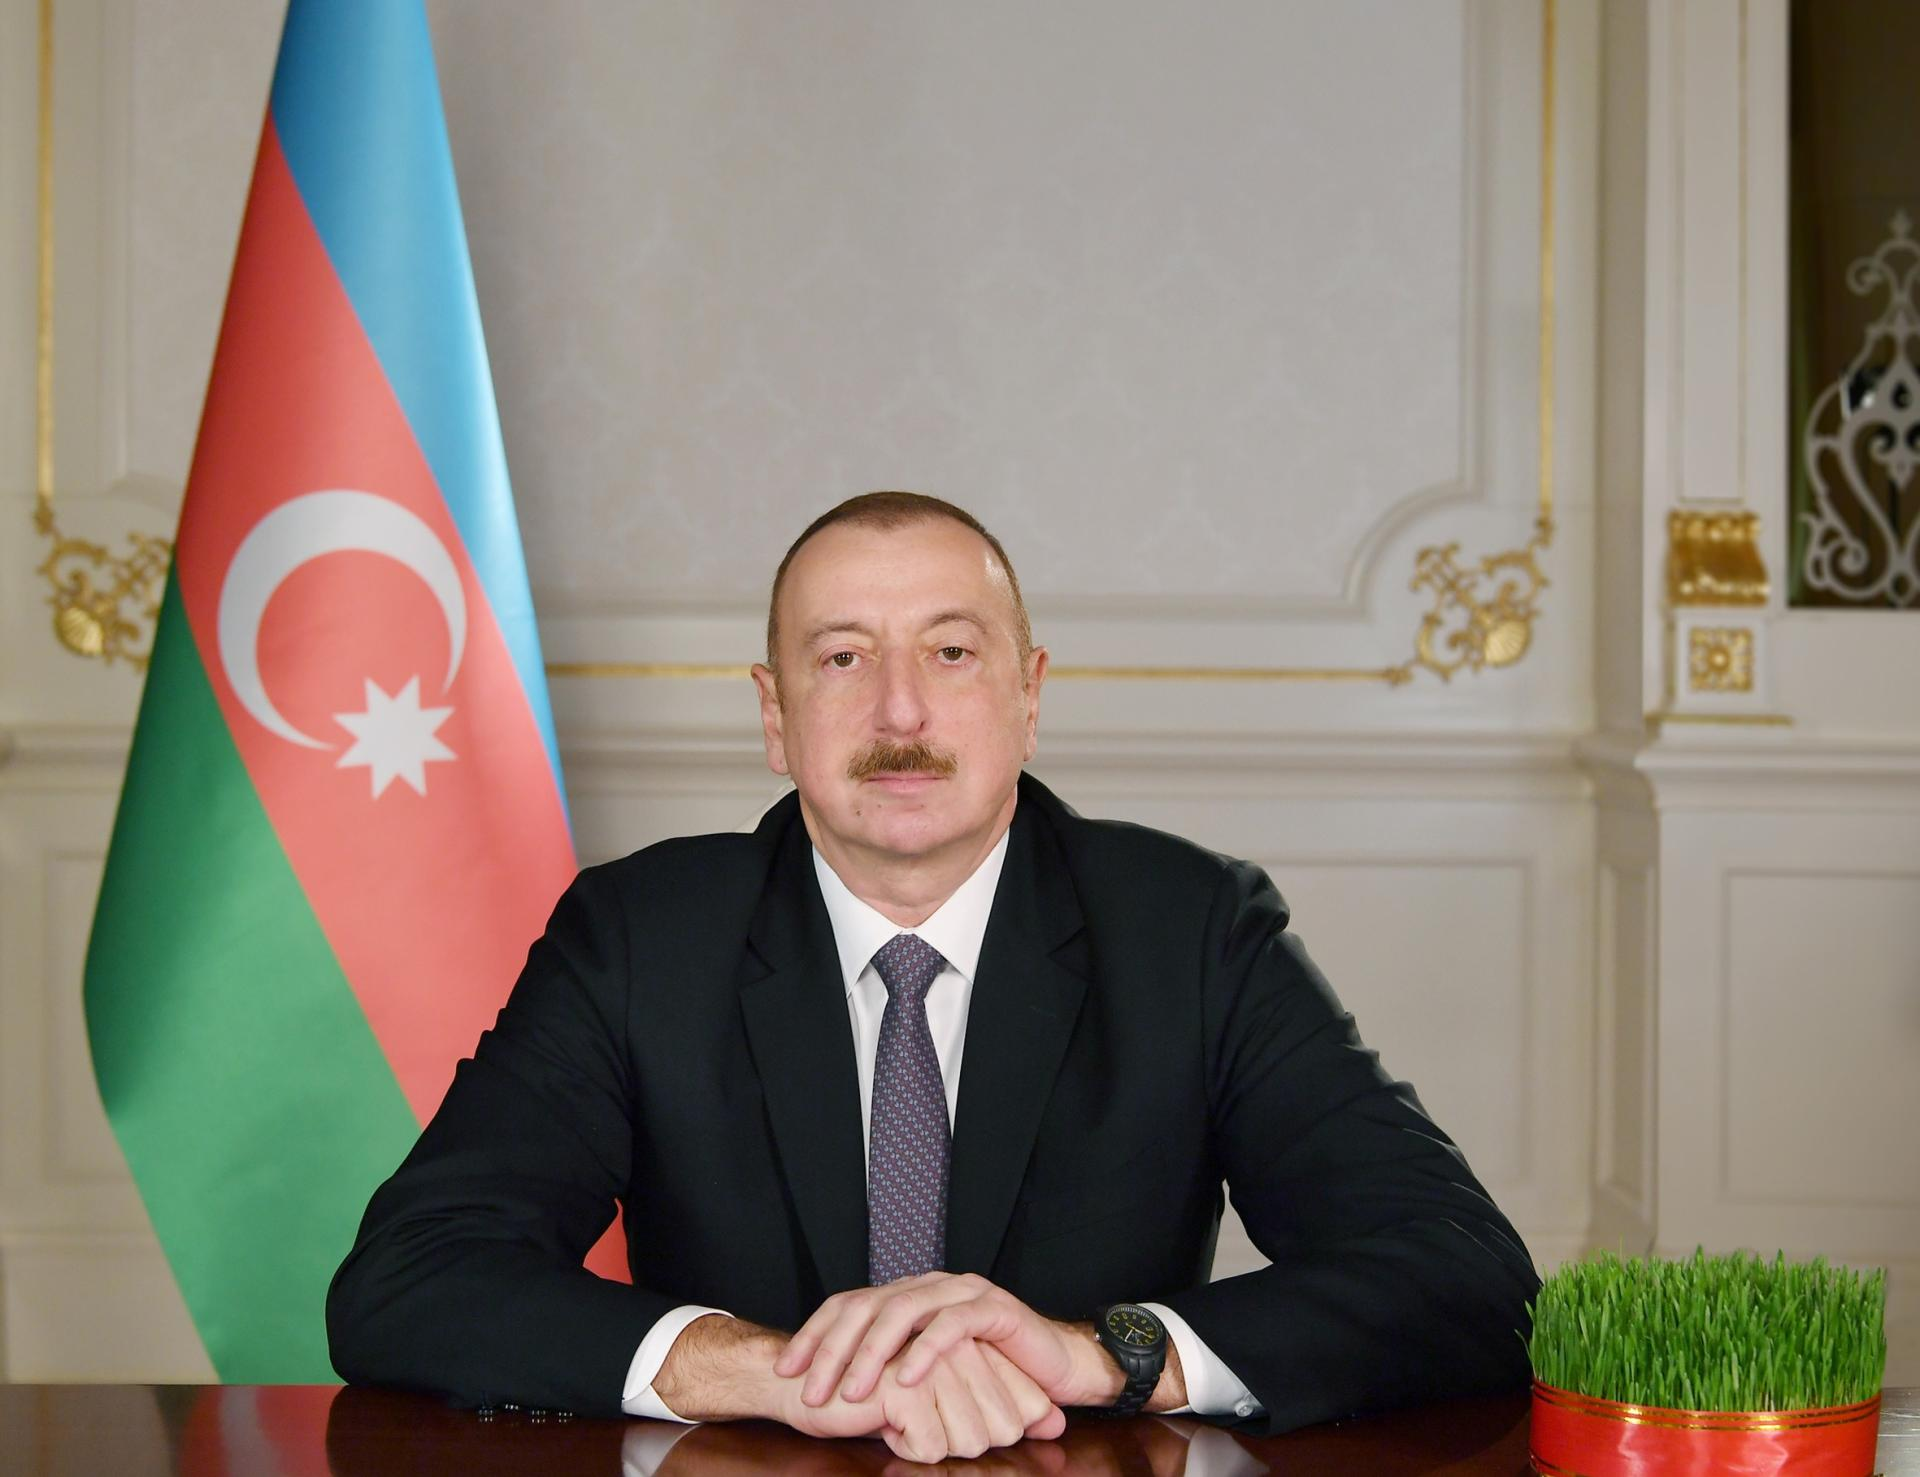 World leaders continue to congratulate Ilham Aliyev